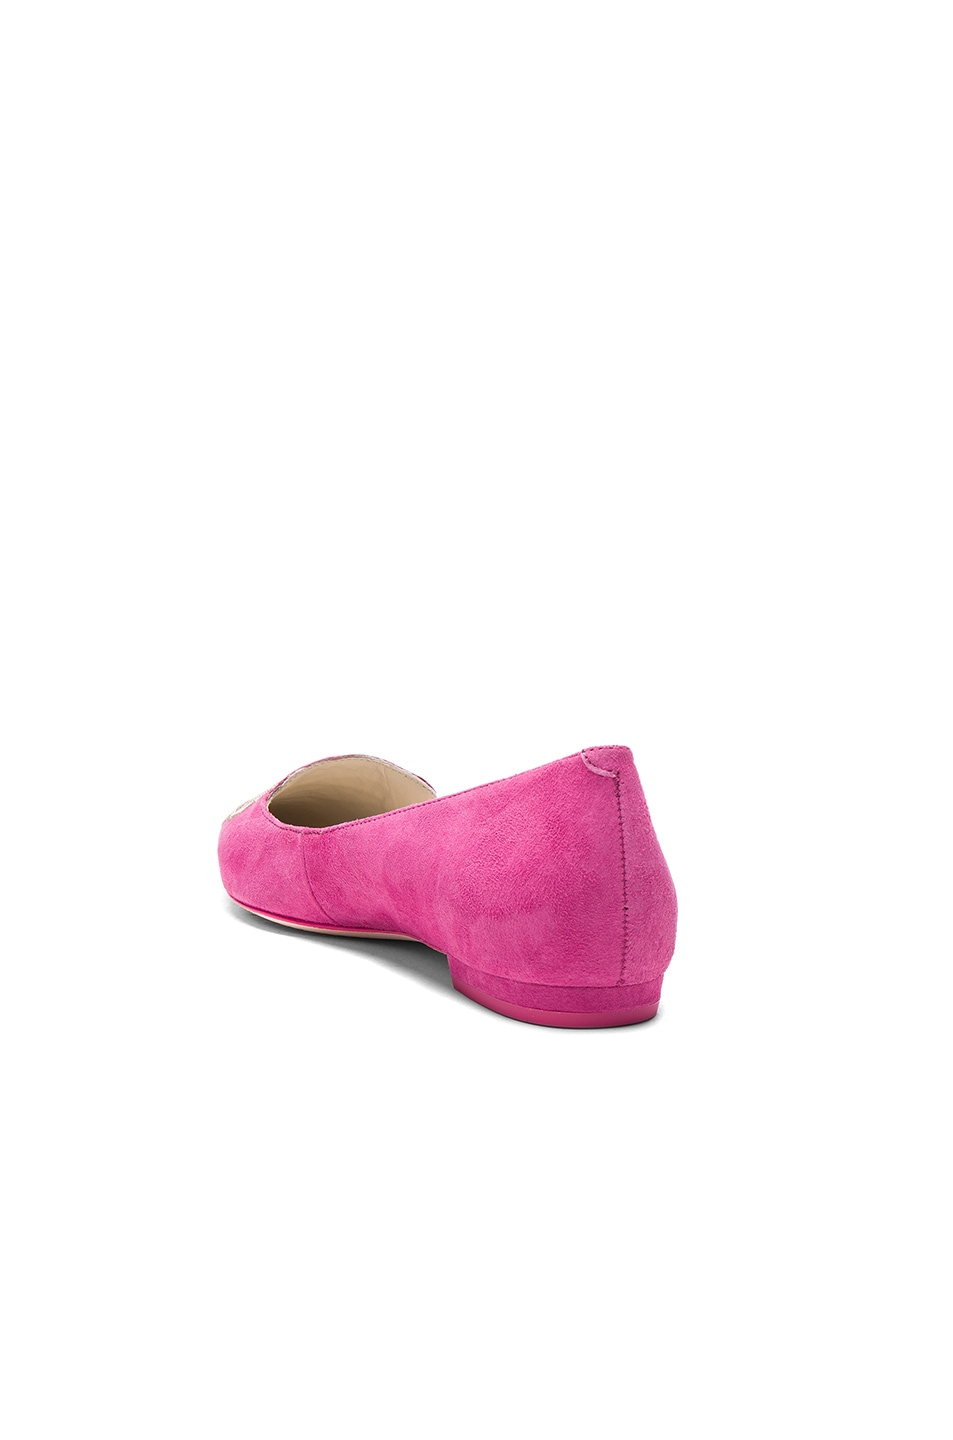 Image 4 of Sophia Webster Suede Bibi Butterfly Flats in Magenta & Rose Gold